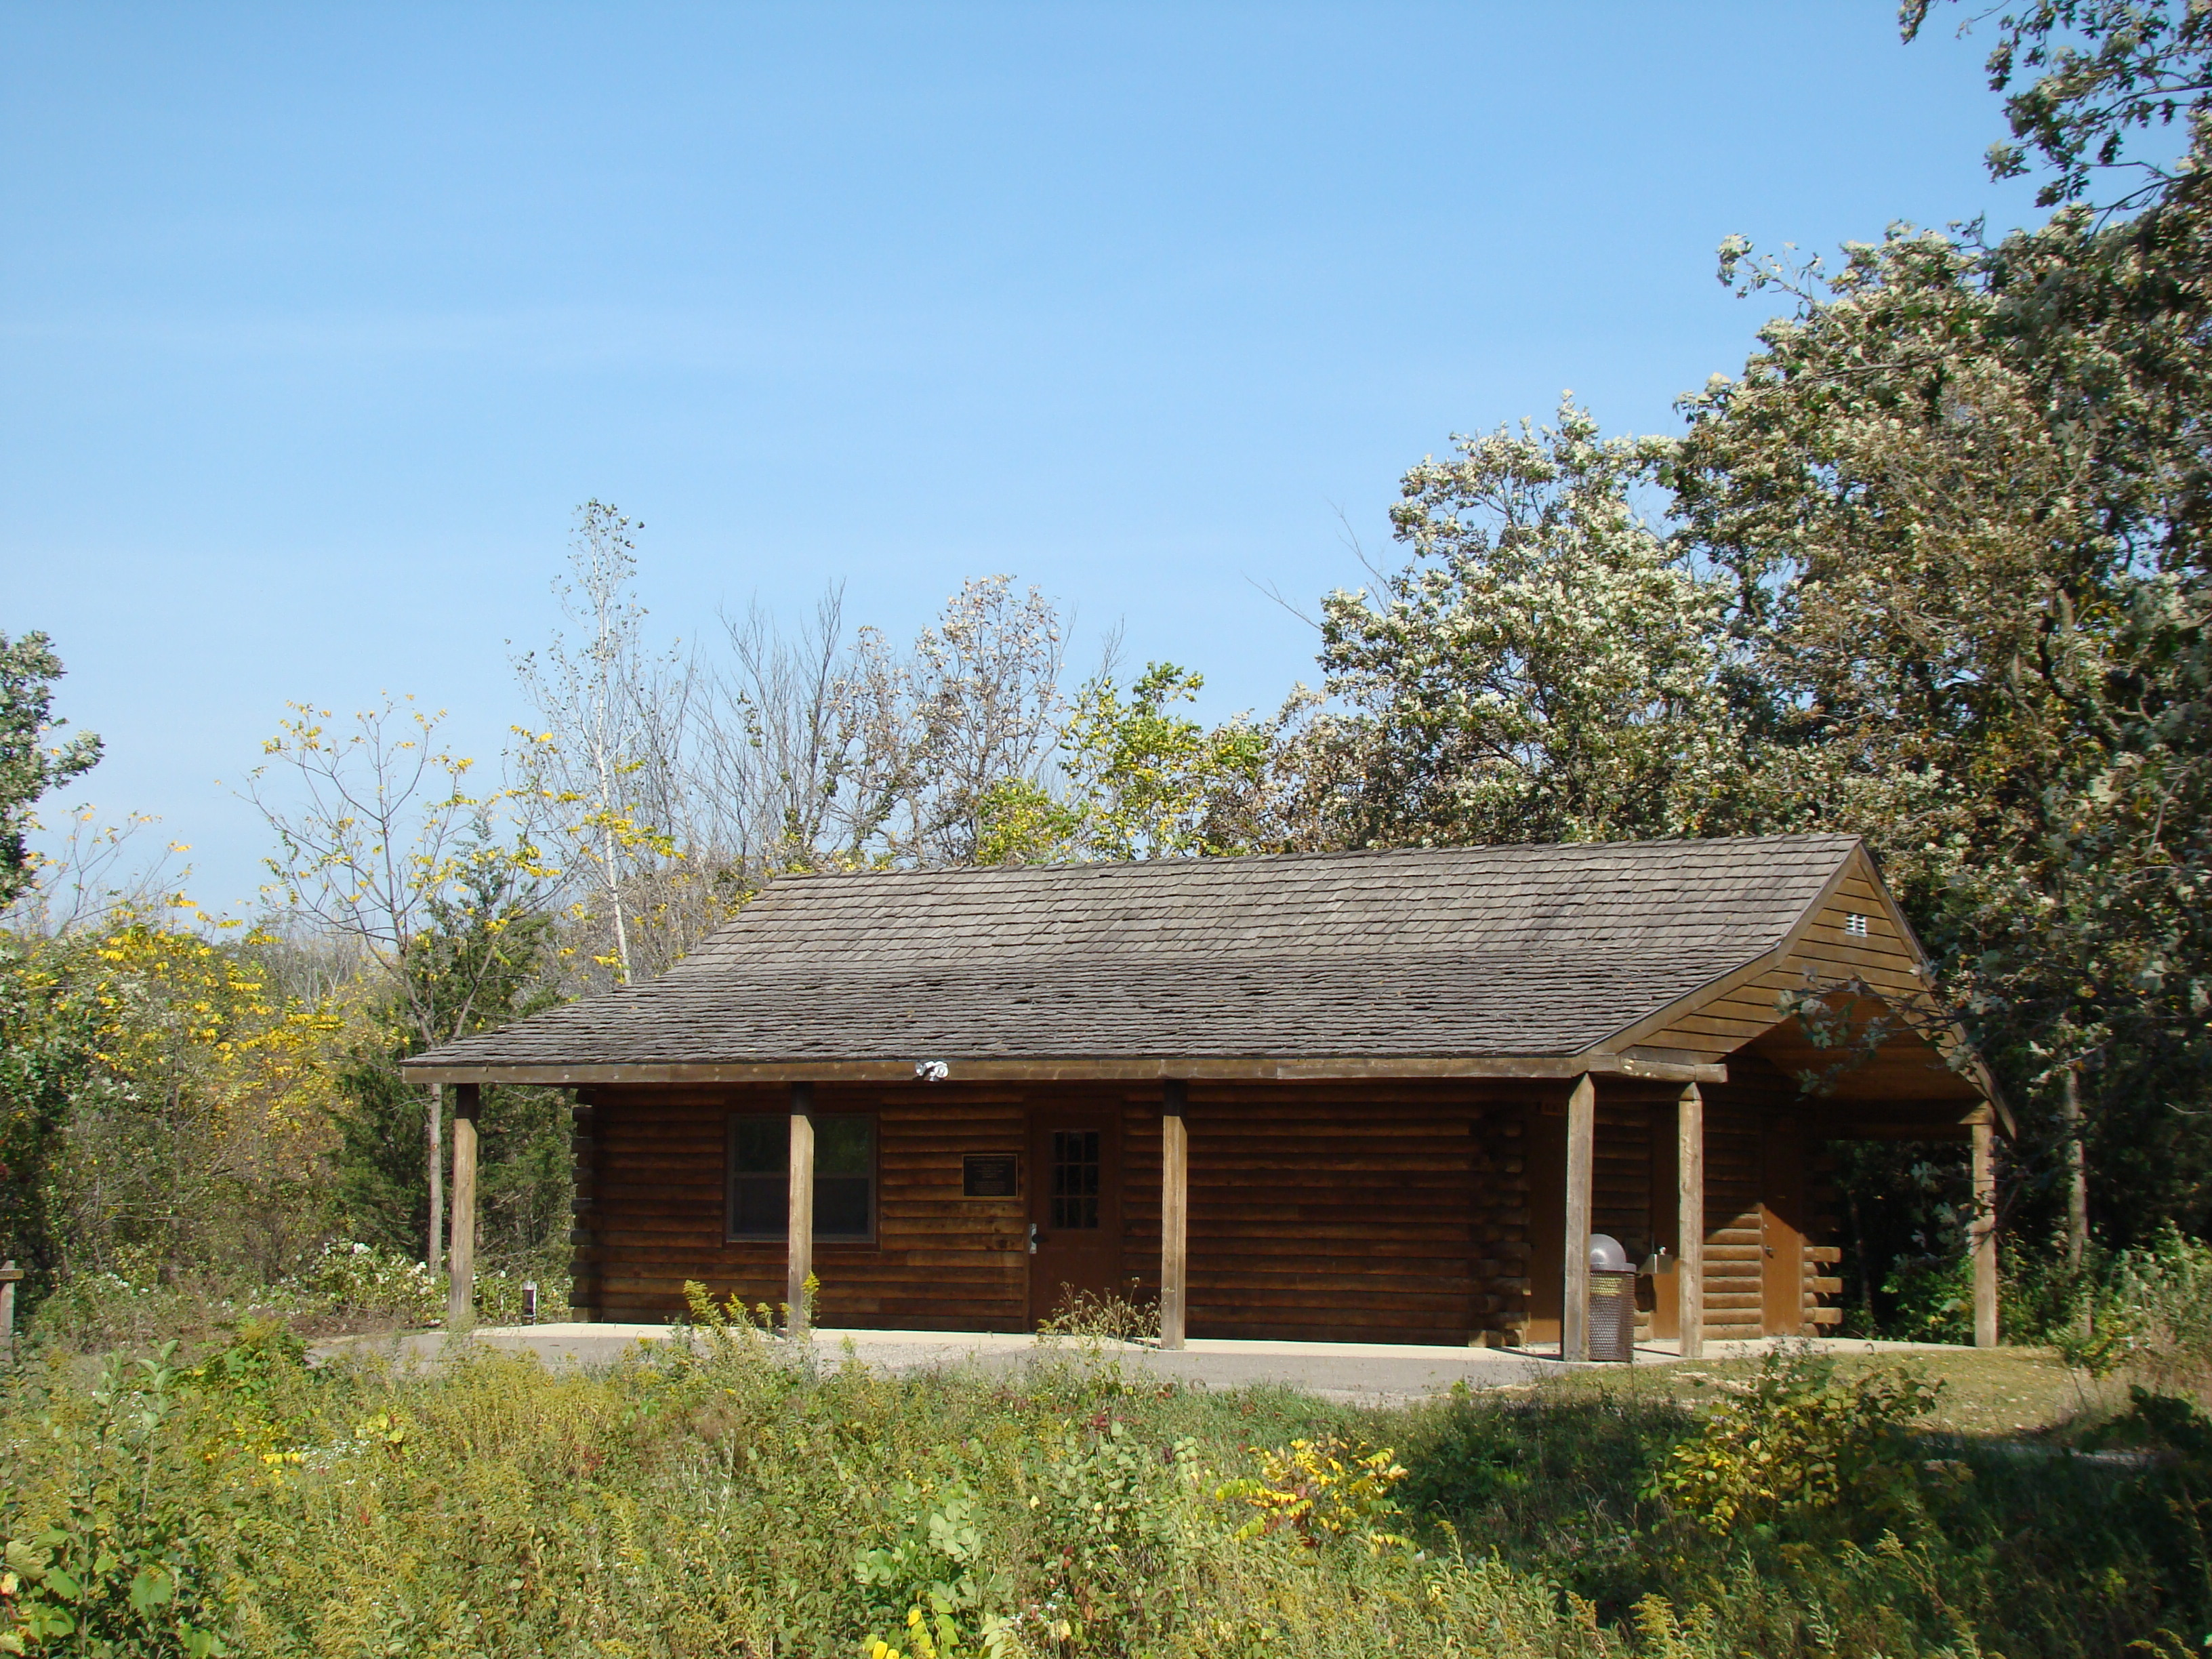 Log Cabin at Williams Nature Center